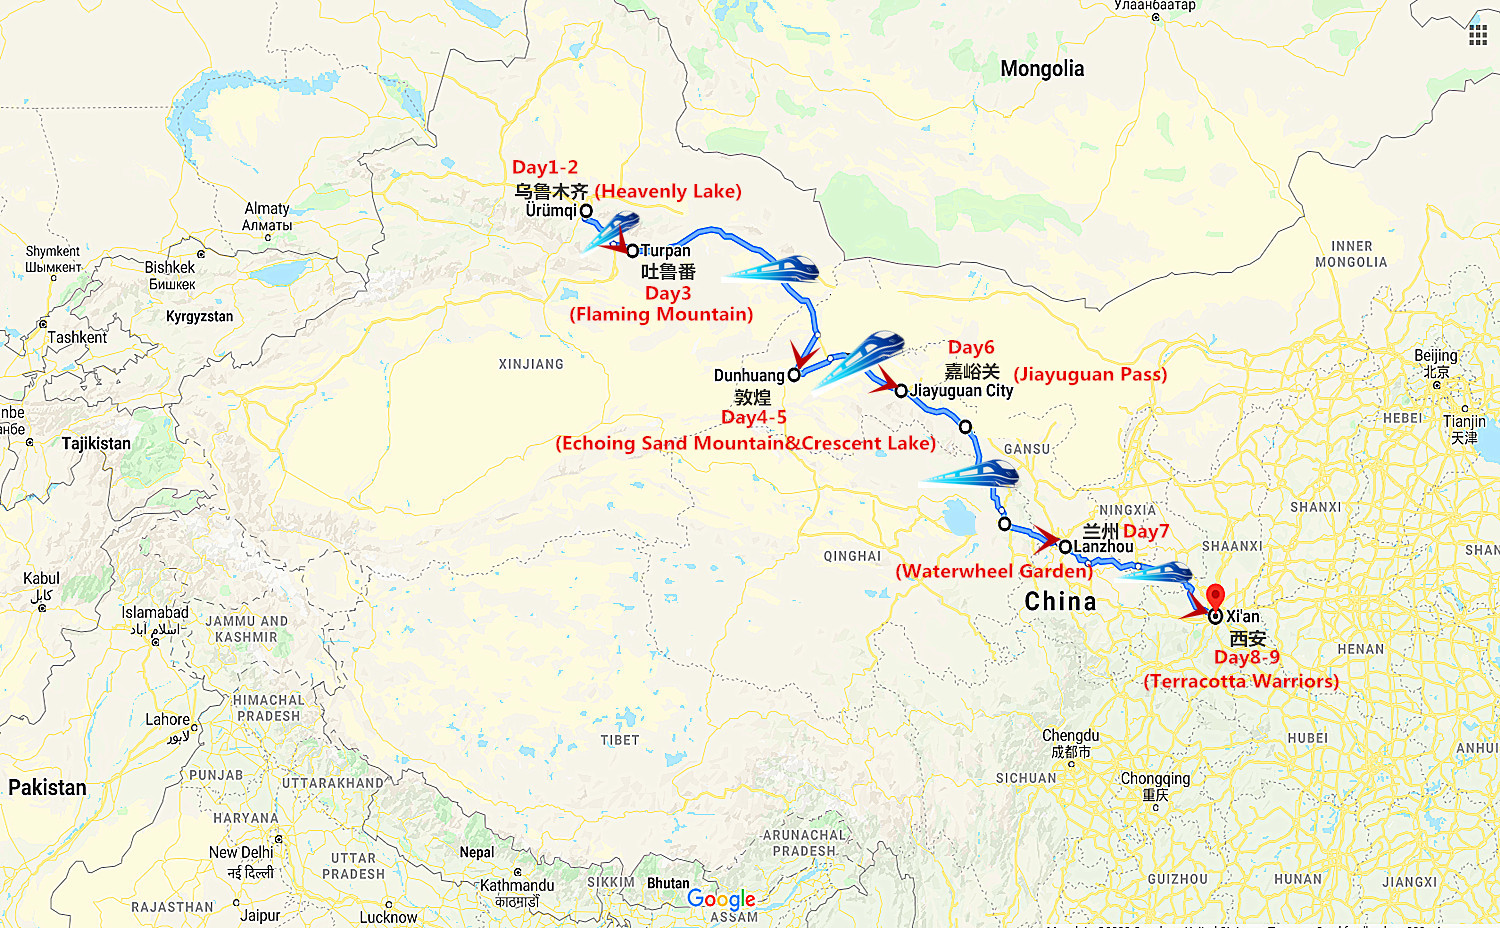 9 Days Silk Road Oriental Express Train Travel Map